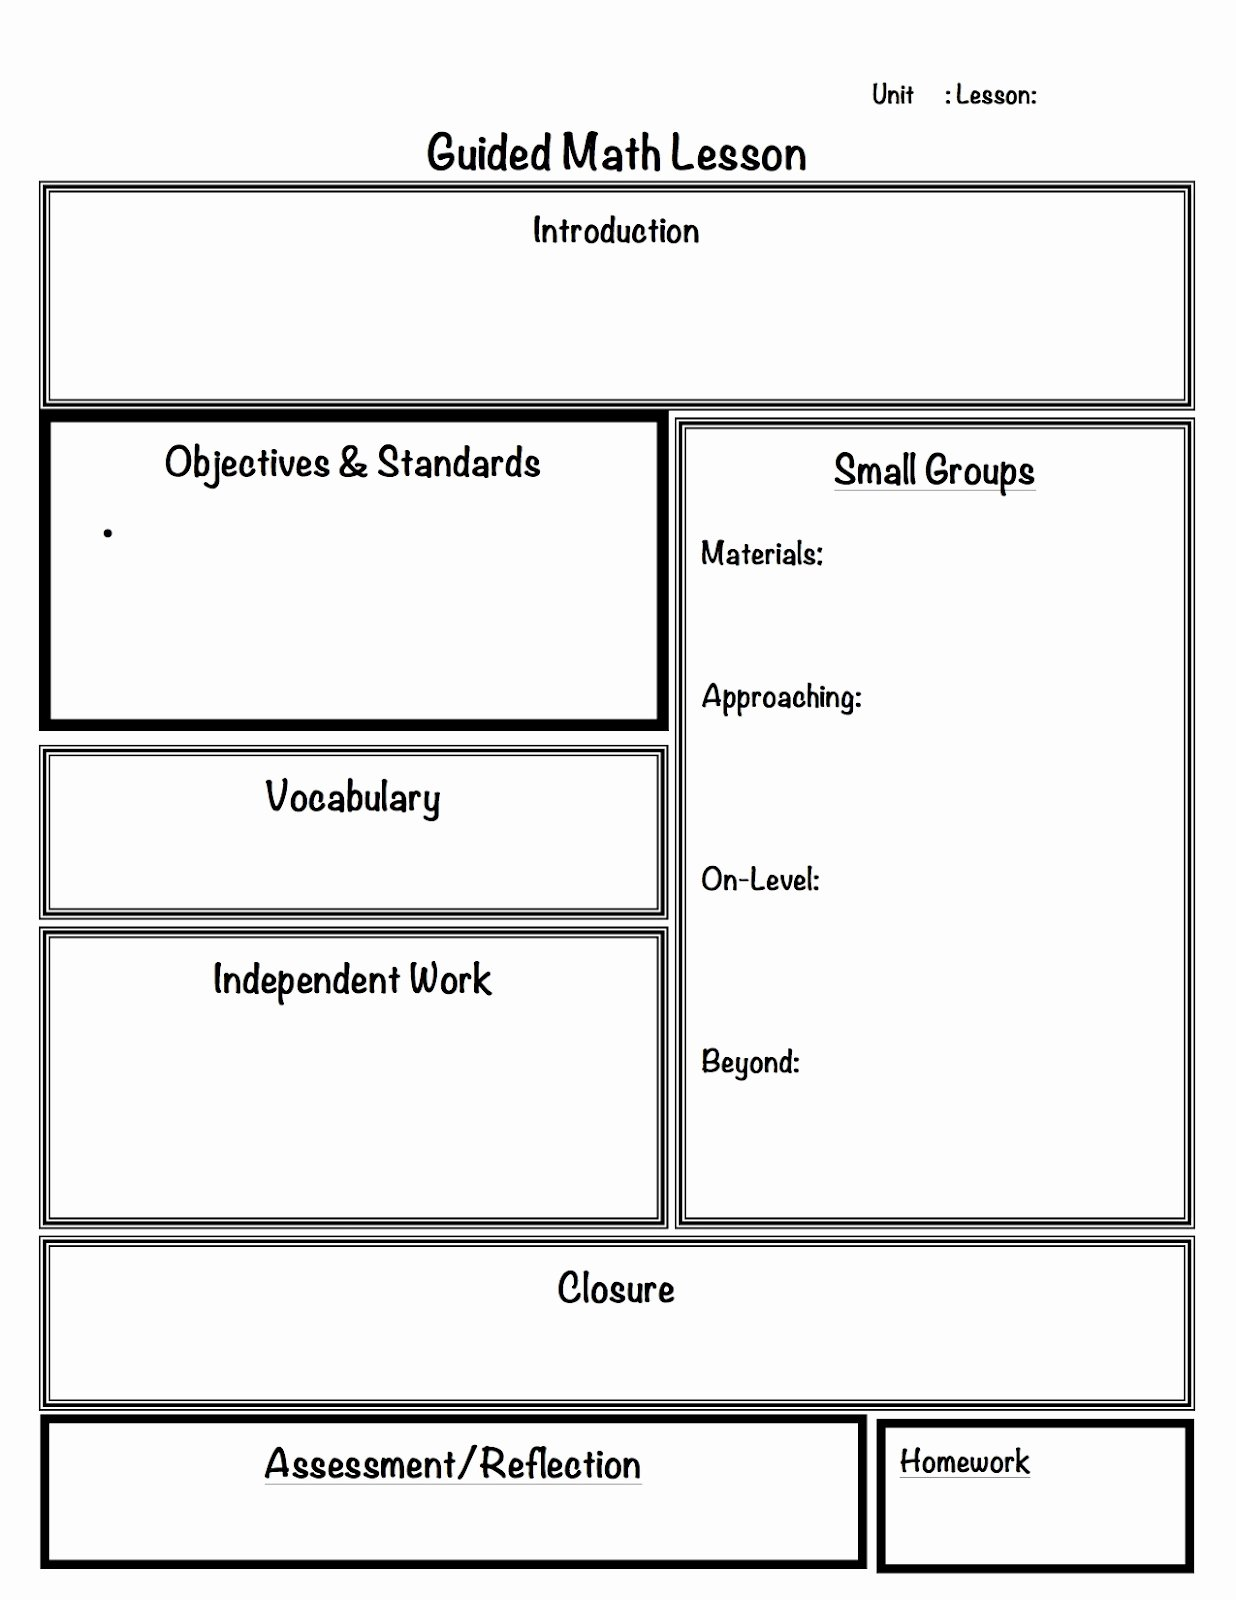 Small Group Lesson Plan Template Best Of 2 organized Apples Classroom solutions for Grades 3 5